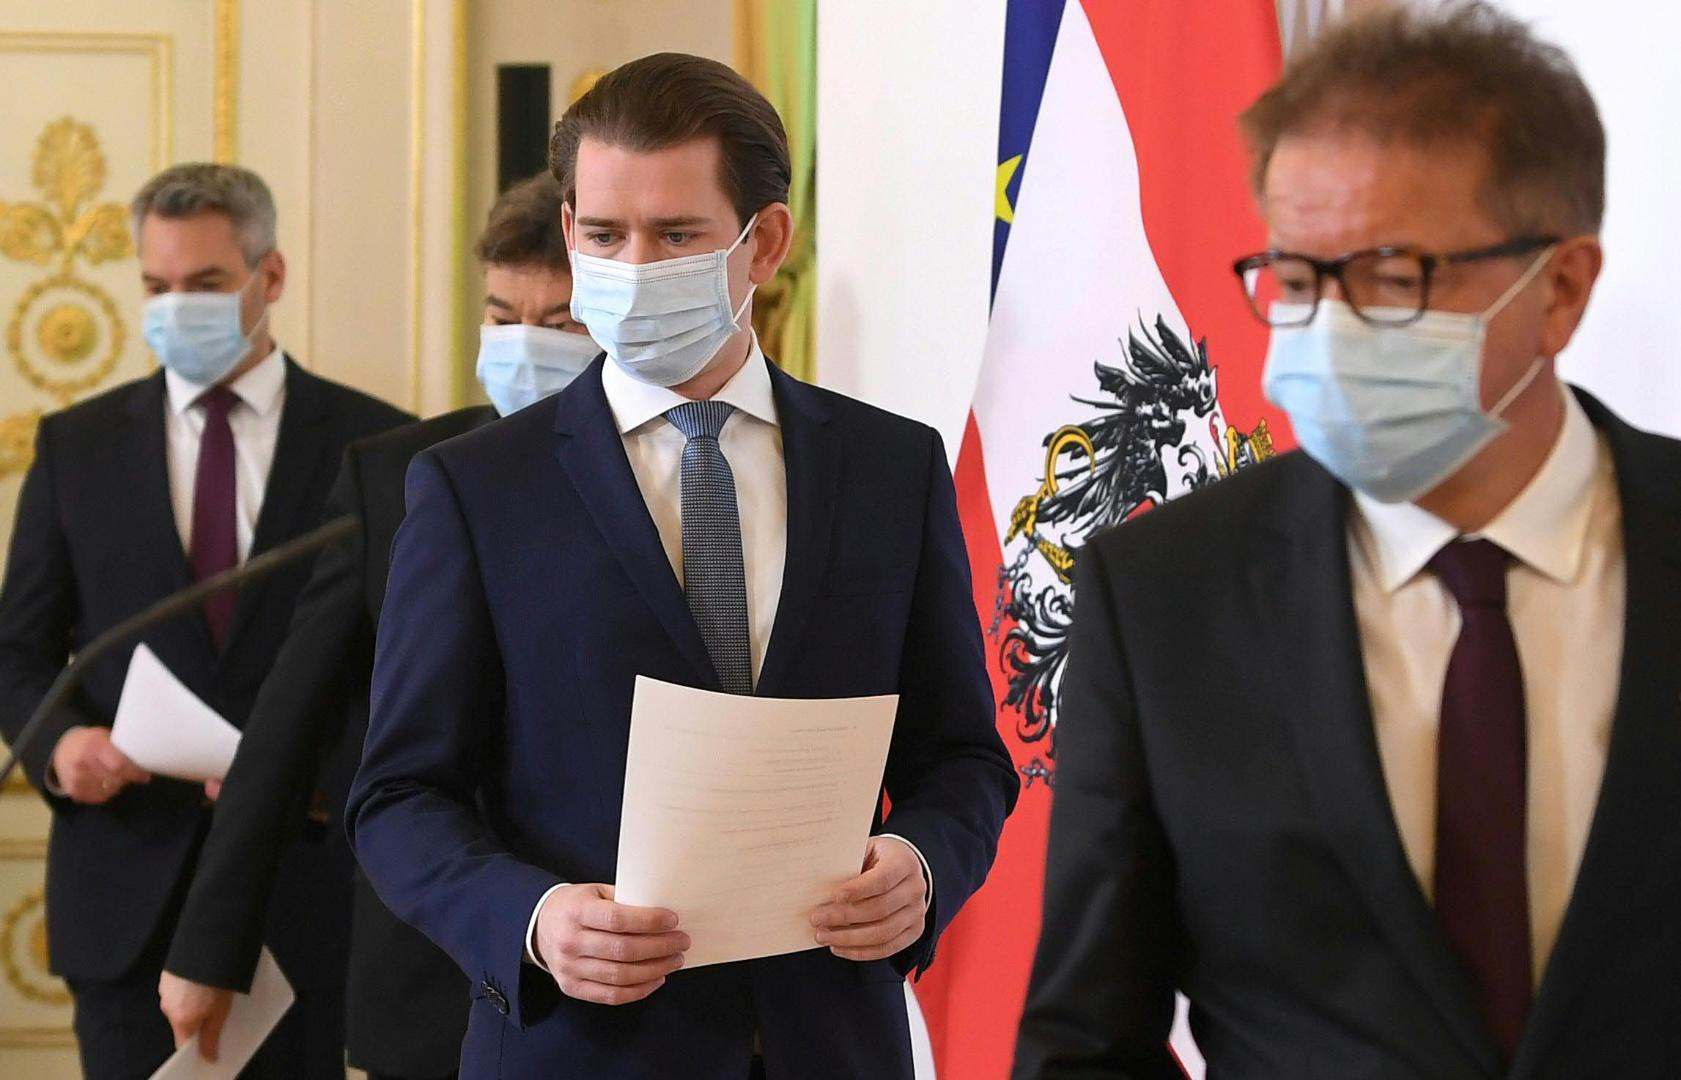 Austrian Chancellor Sebastian Kurz and Ministers arrive for a news conference in Vienna/reuters